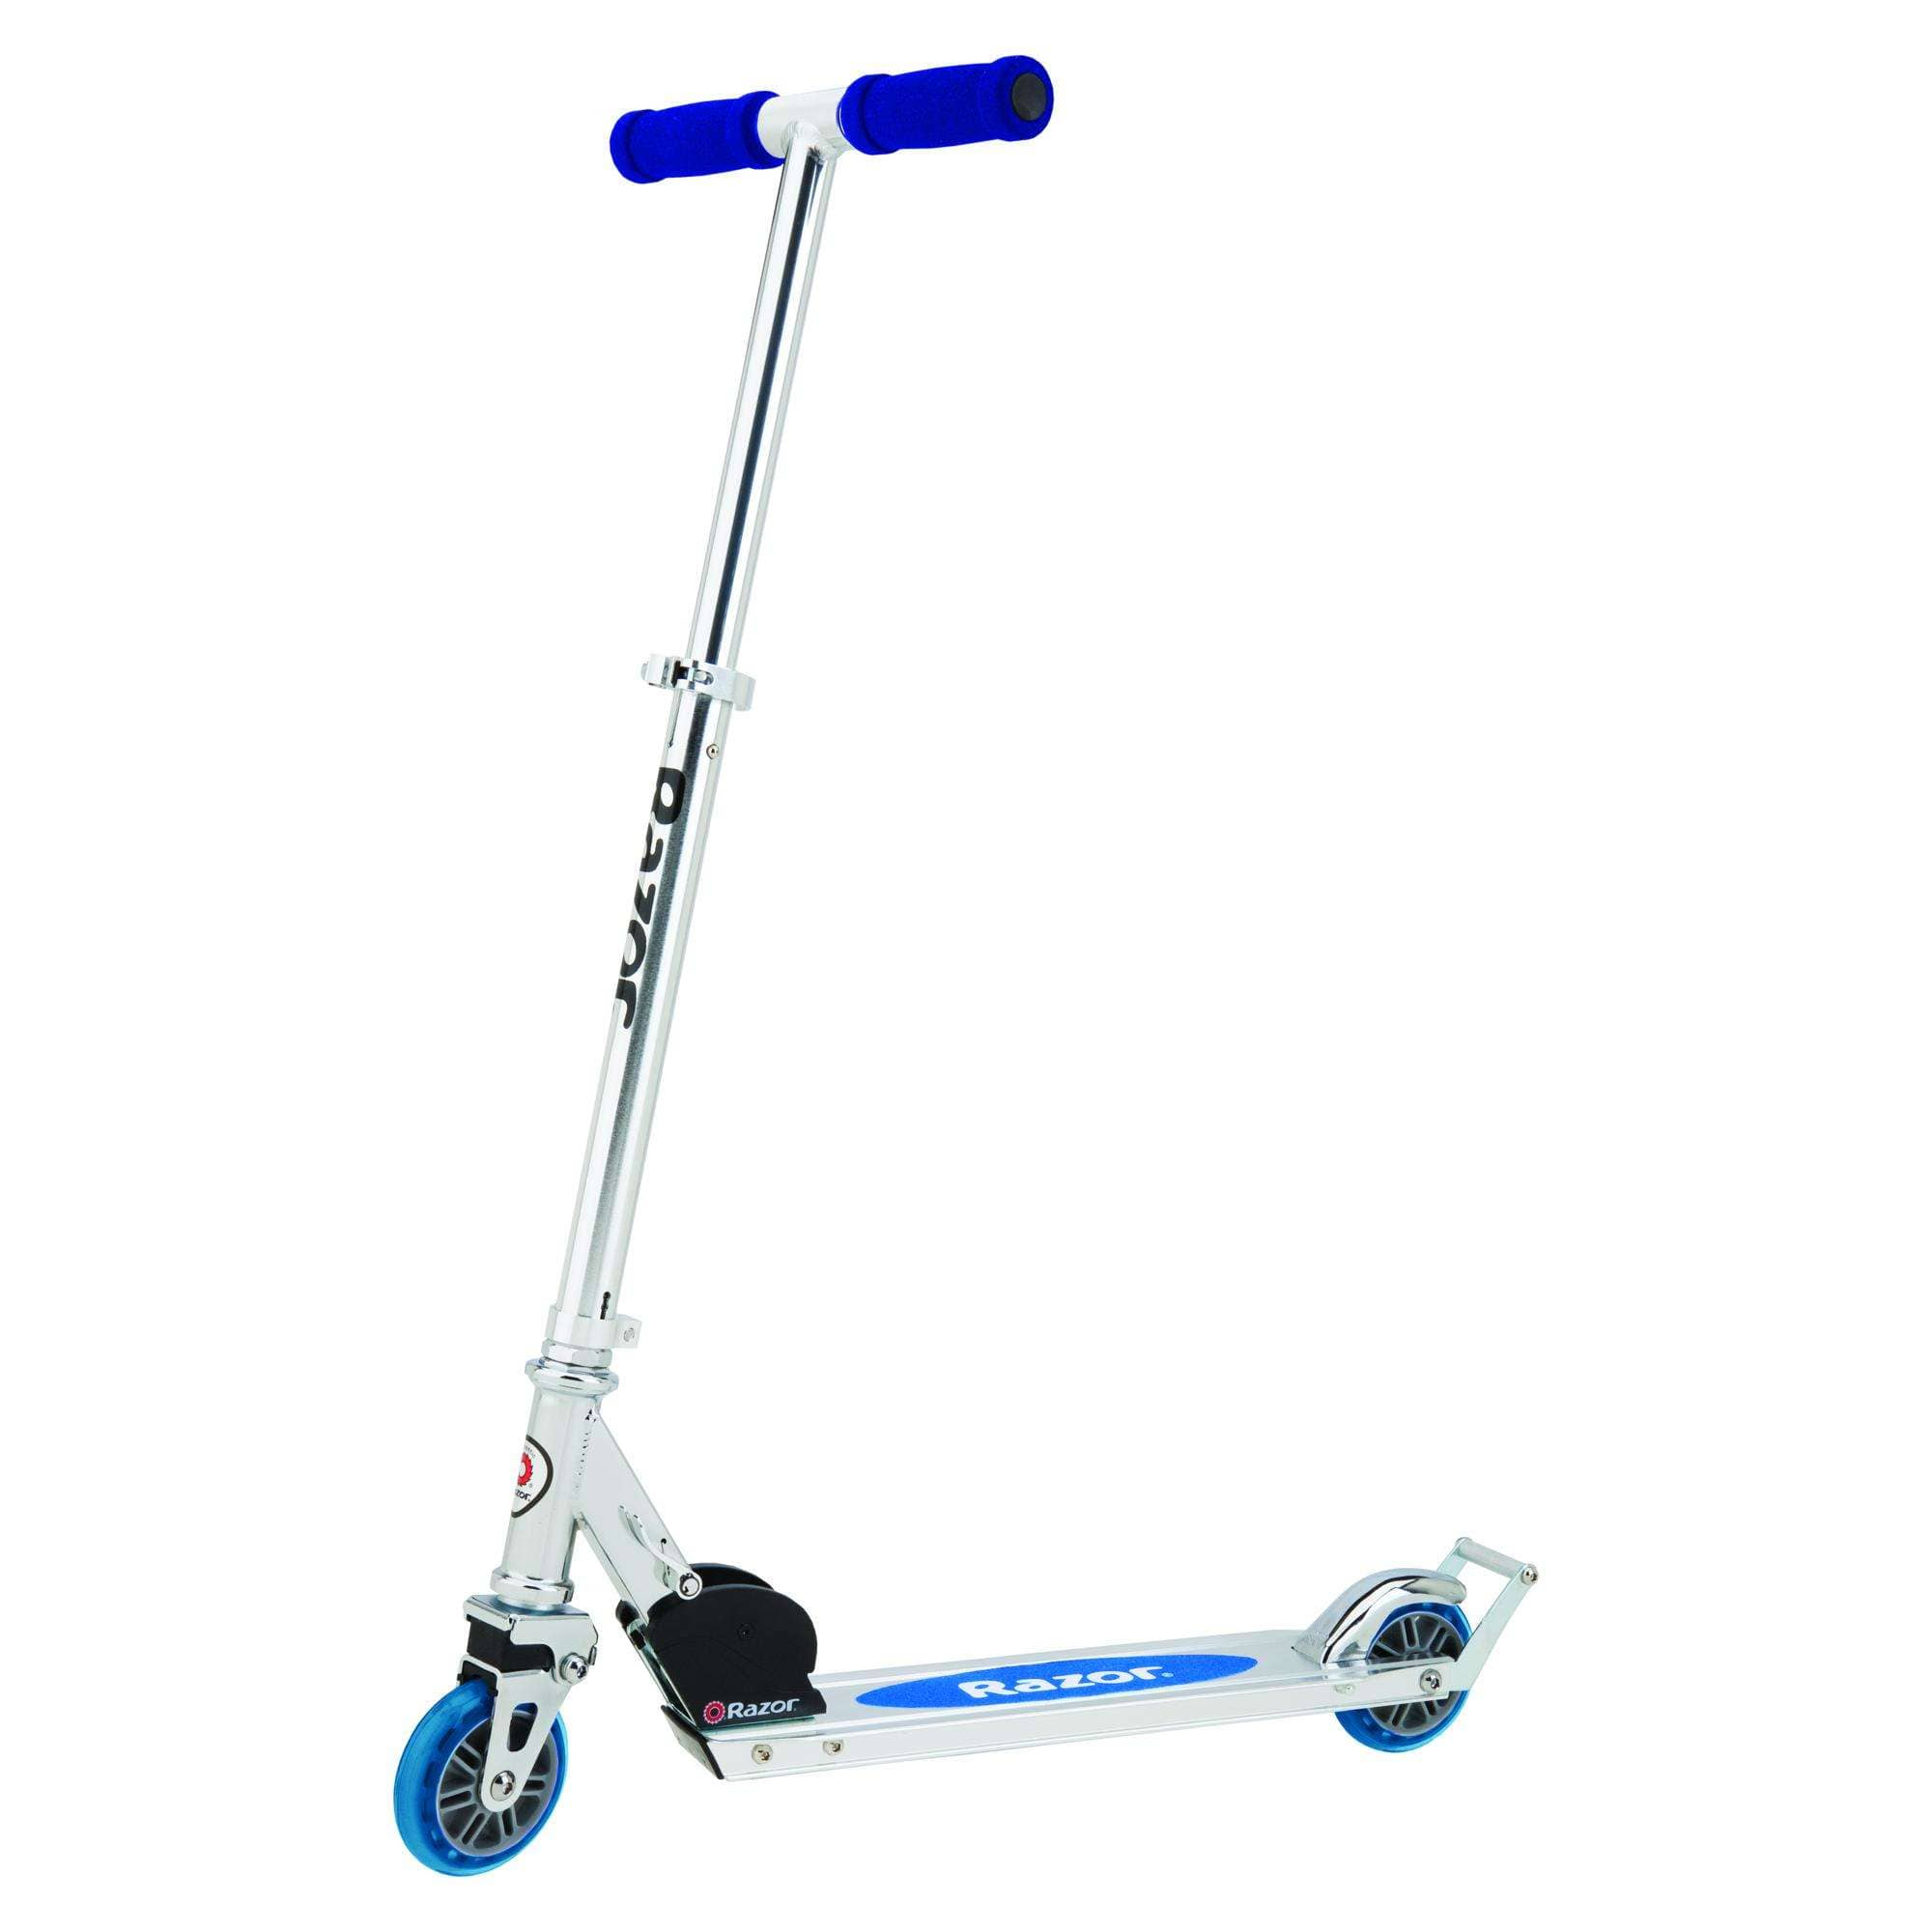 Razor A2 Kick Scooter for Kids (Dark Blue or Red)